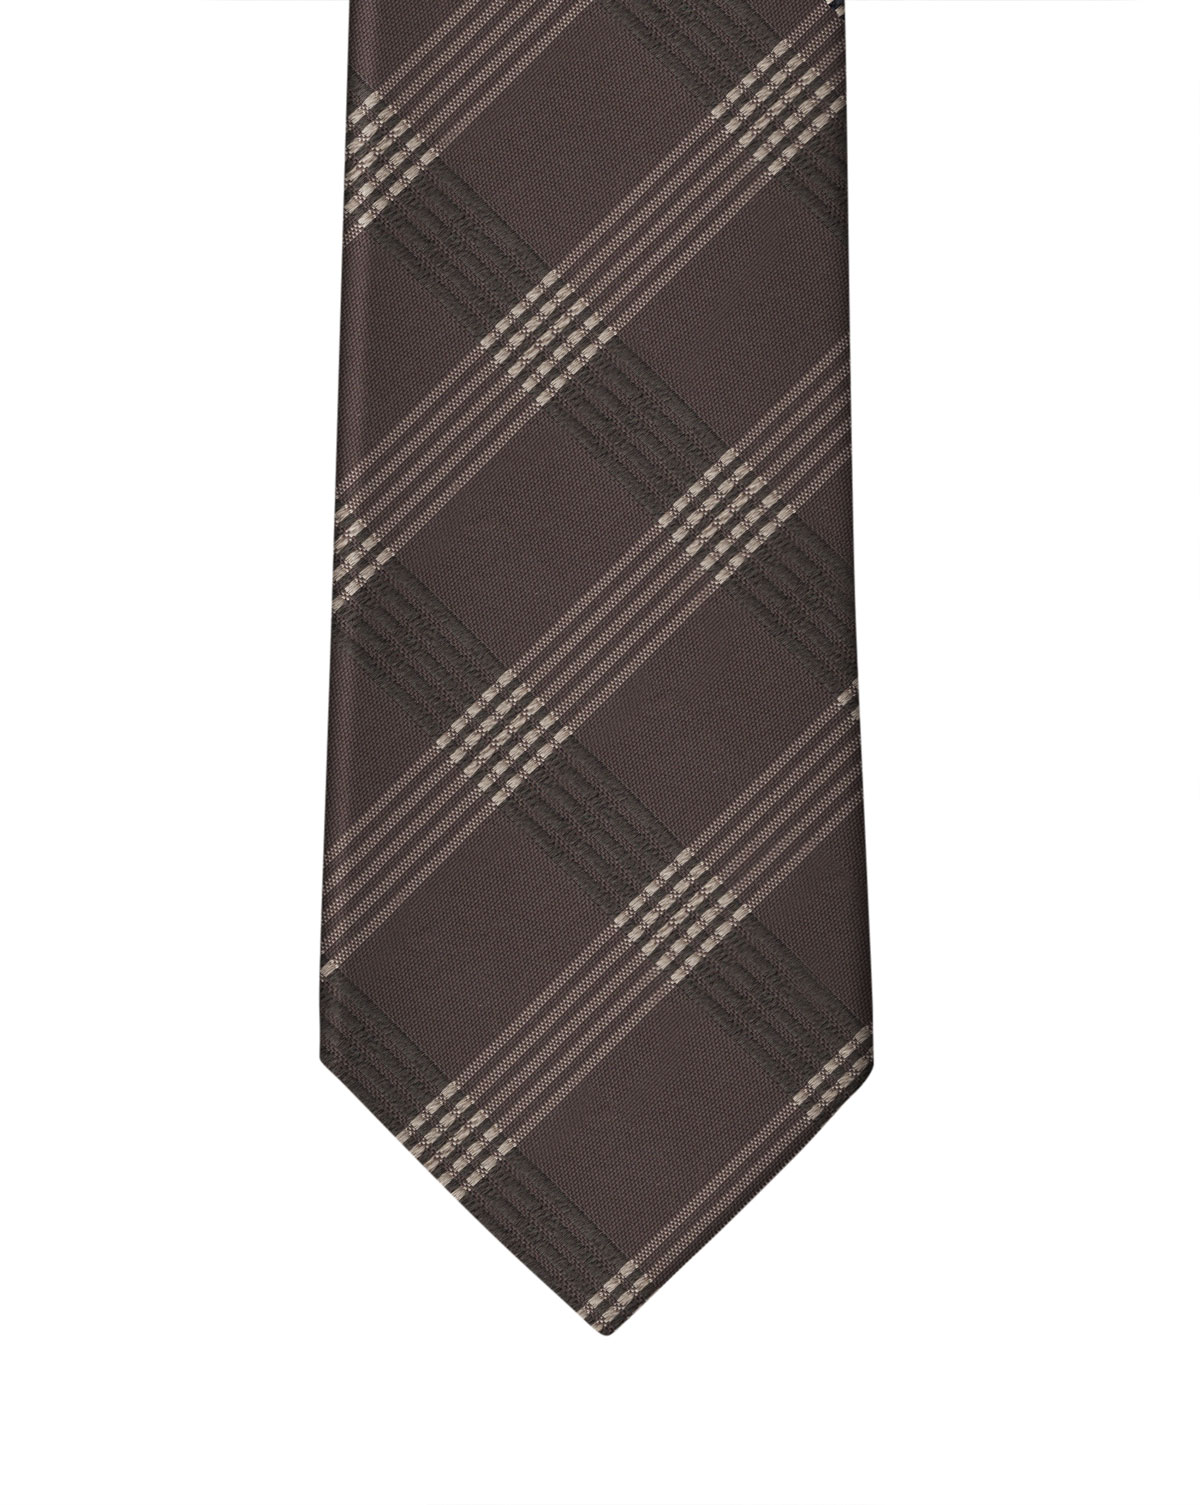 Brown Graphic Check Necktie